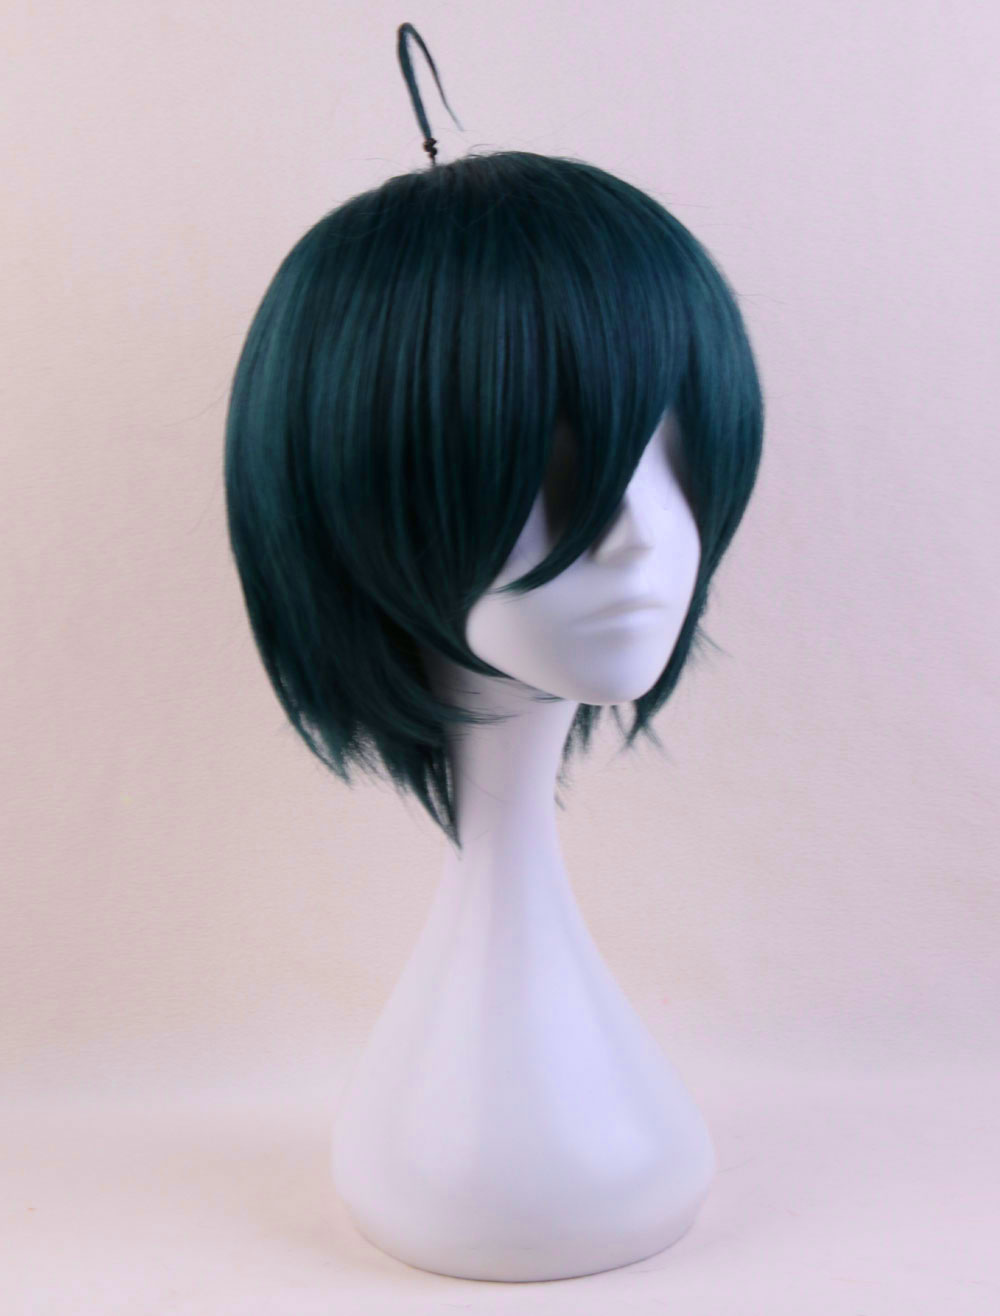 Danganronpa V3 Killing Harmony Shuichi Saihara Cosplay Wig Halloween Milanoo Com Check out our shuichi saihara selection for the very best in unique or custom, handmade pieces from our accessories shops. danganronpa v3 killing harmony shuichi saihara cosplay wig halloween